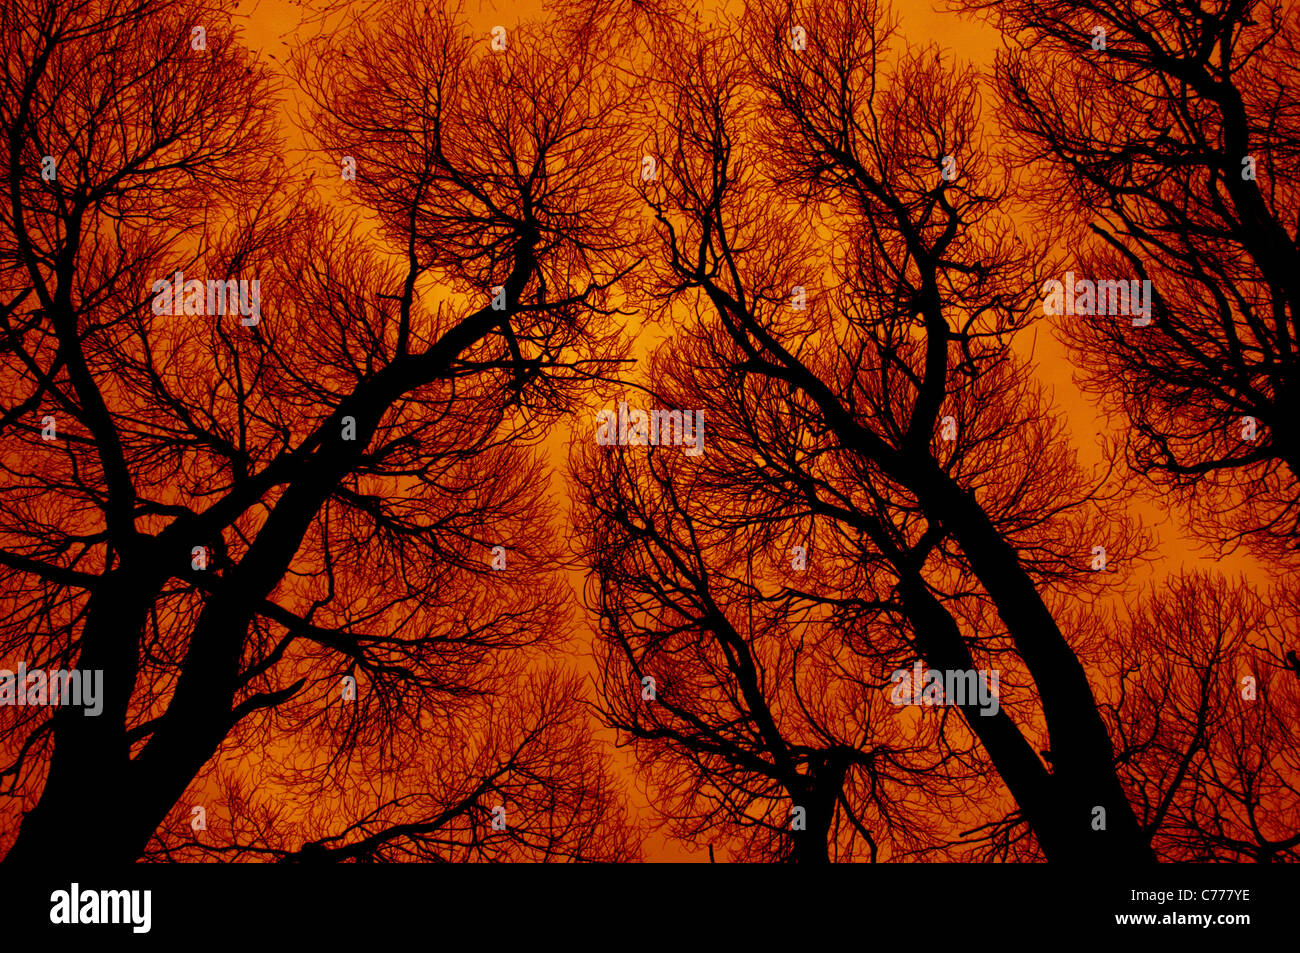 Abstraction in fiery colors Stock Photo